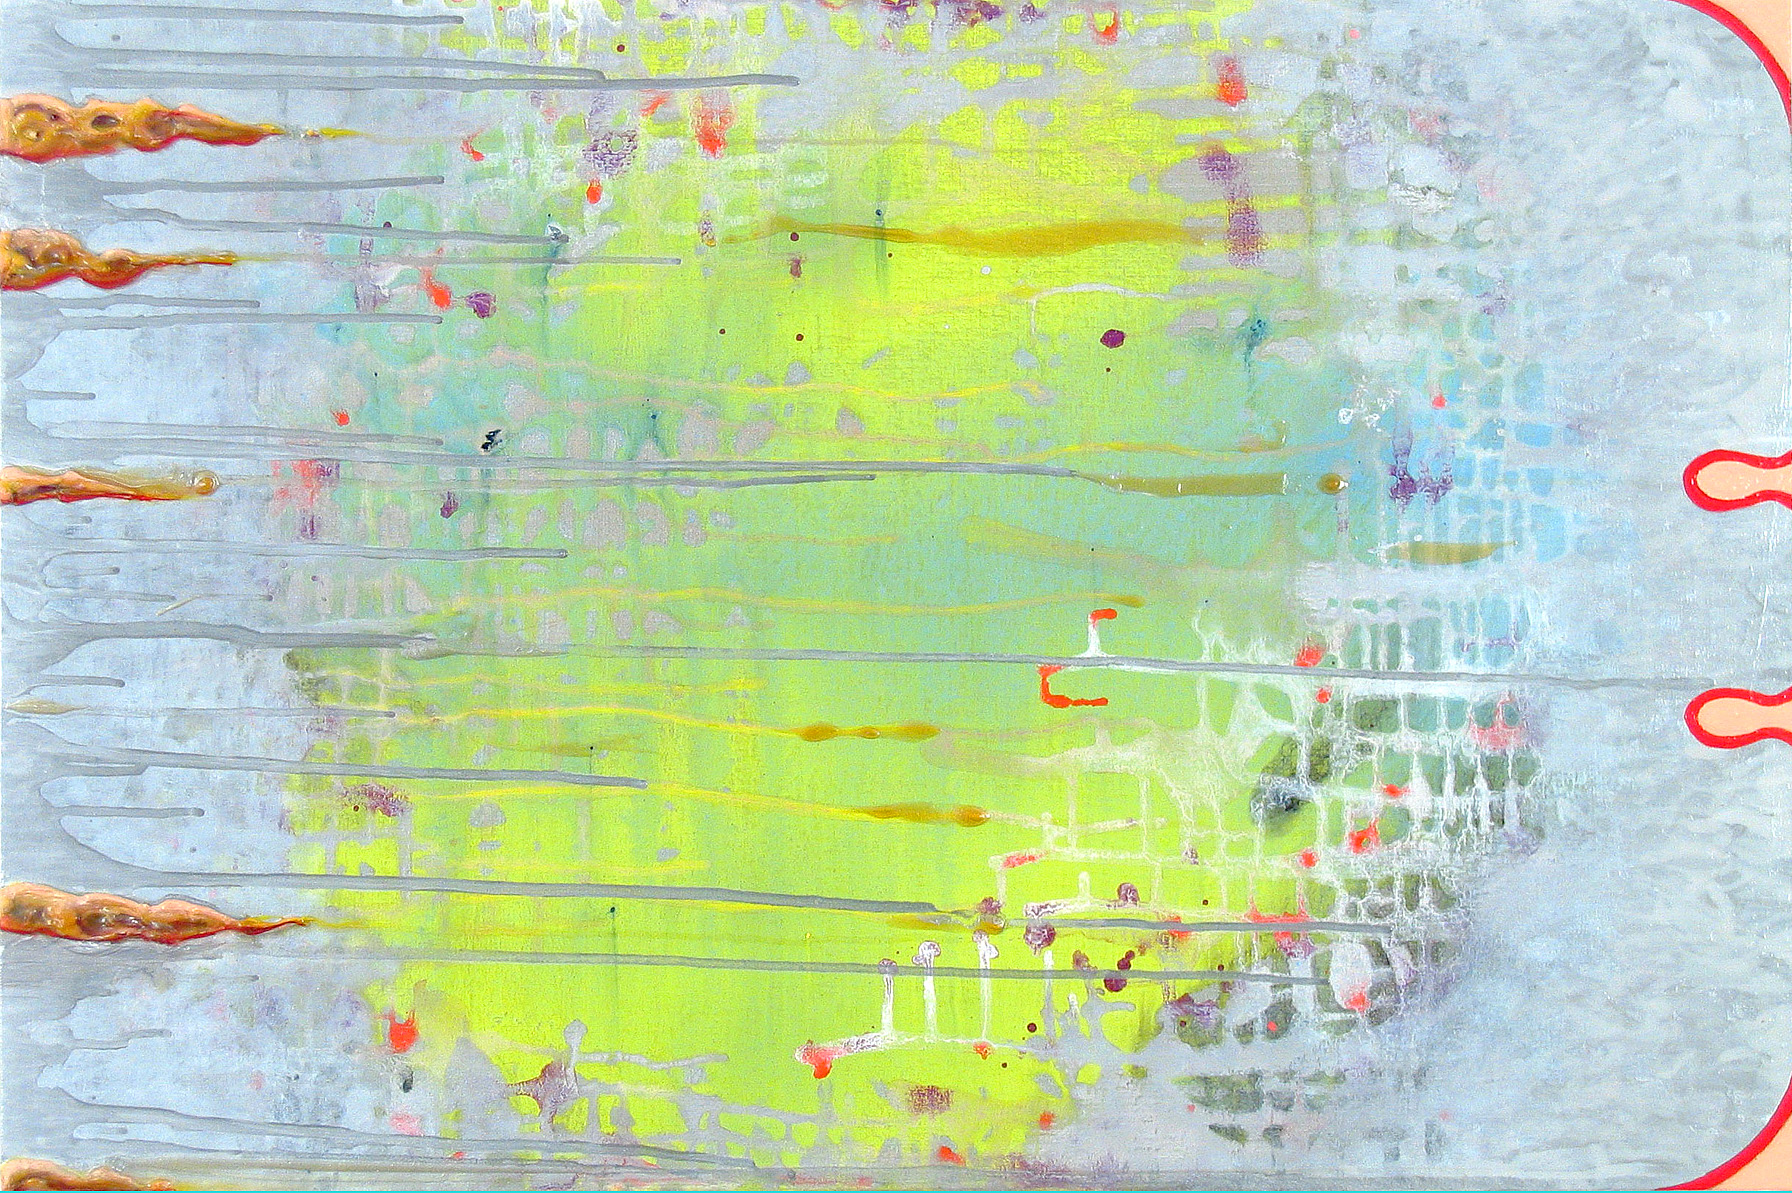 28 May , oil, acrylic and metallic paint on canvas, 20 in x 30 in, 2010.